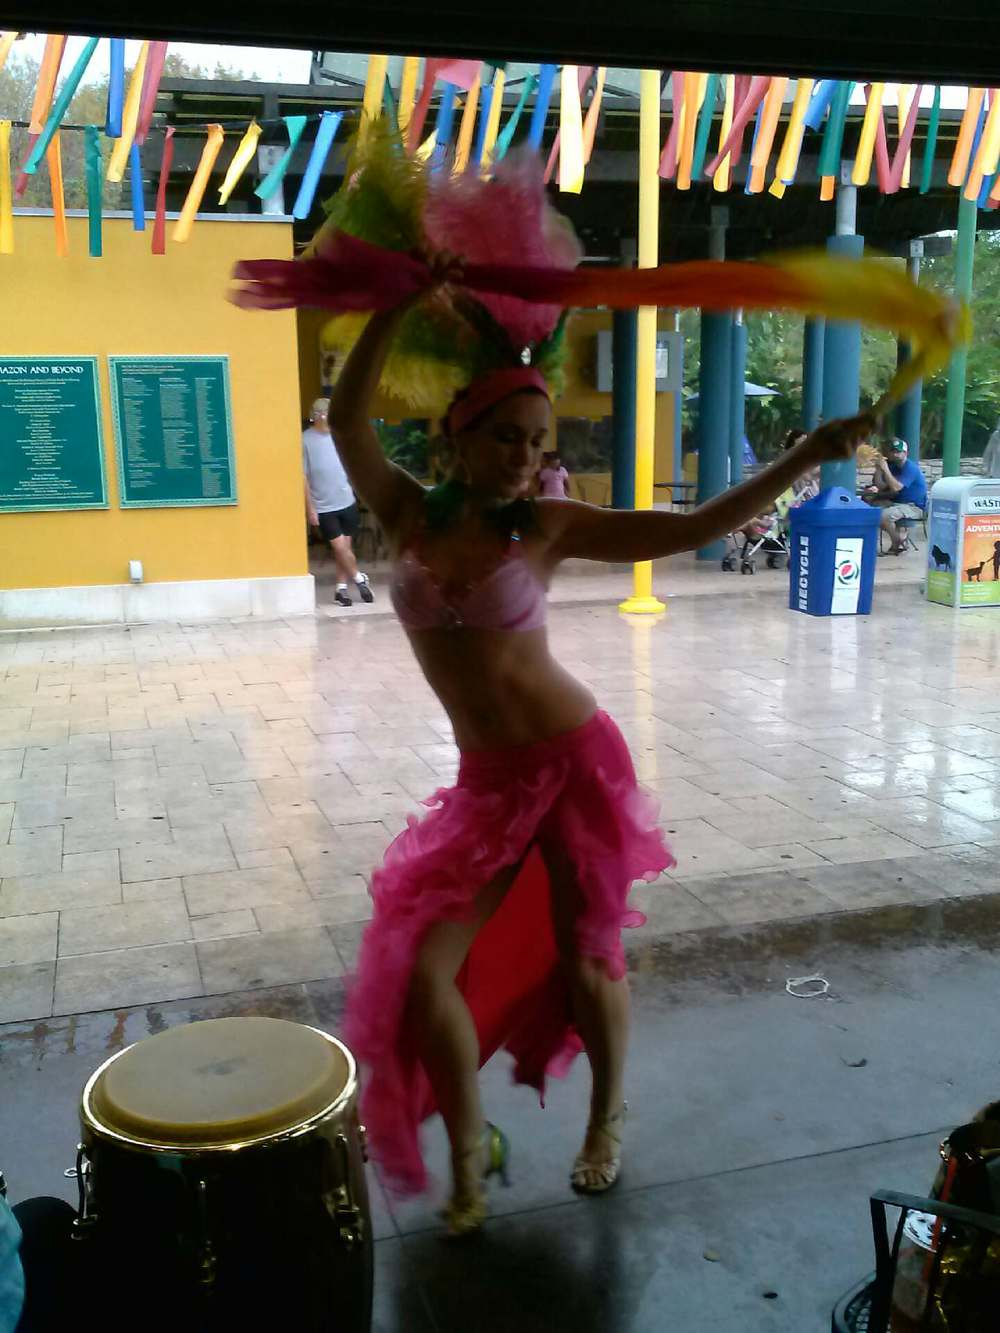 samba dancer brazilian dancer west palm beach miami south beach jupiter